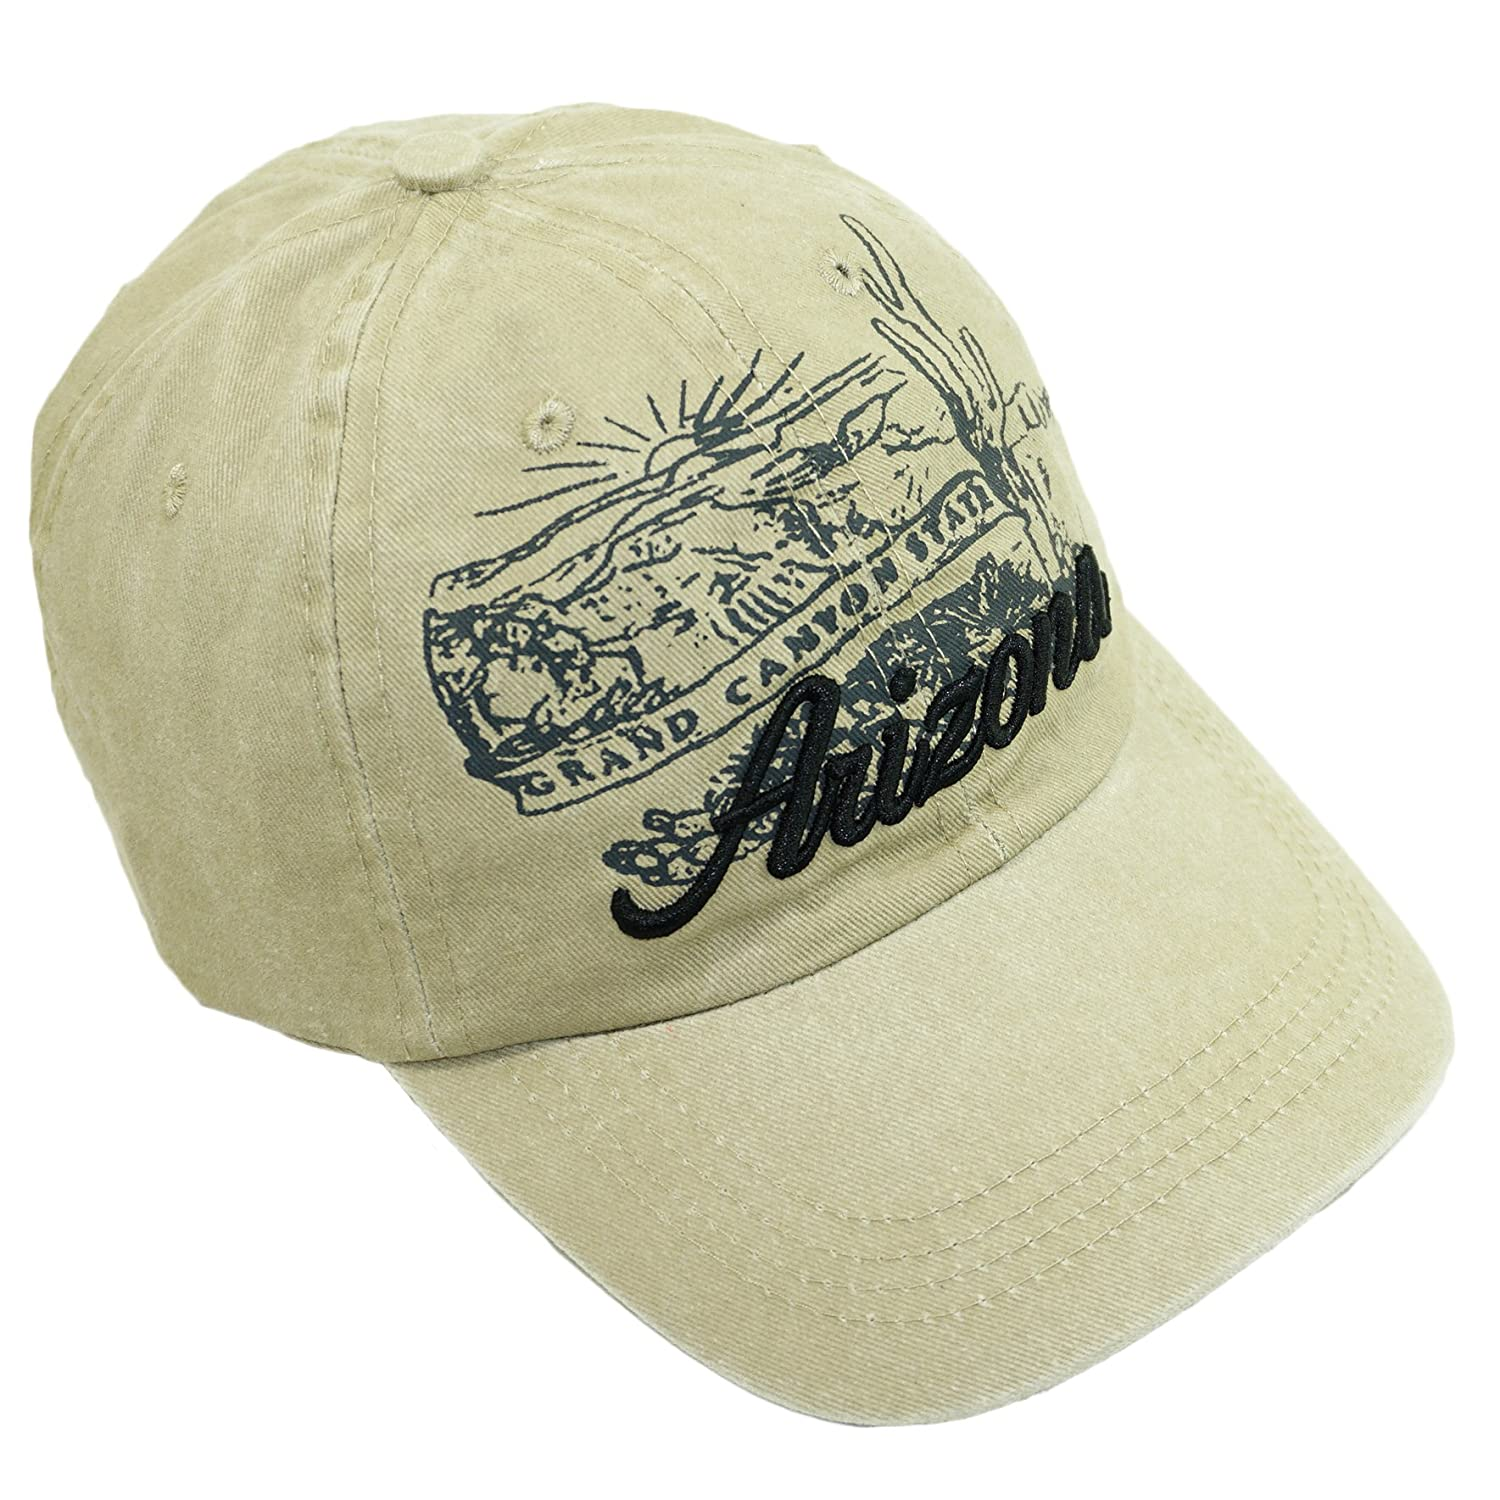 99f02559b2d Bingoo USA City Embroidered Hat Adjustable Landscape Cotton Baseball Cap  (Arizona-Beige) at Amazon Men s Clothing store